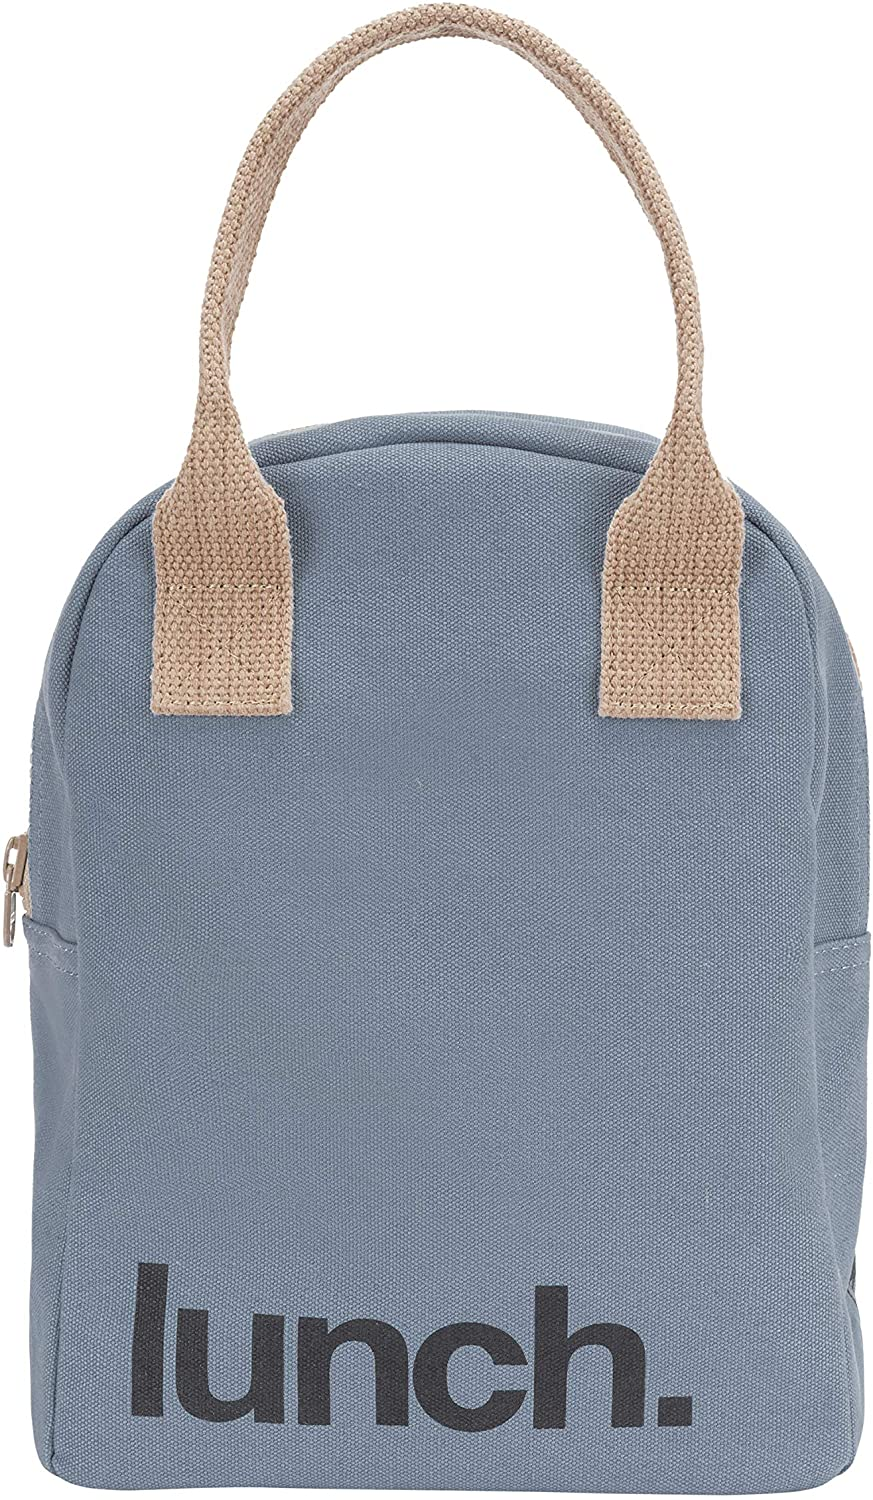 Fluf Zipper Lunch Bag | Reusable Canvas Lunch Box for Women, Men, Kids | Organic Cotton Meal Tote | (Blue Lunch)